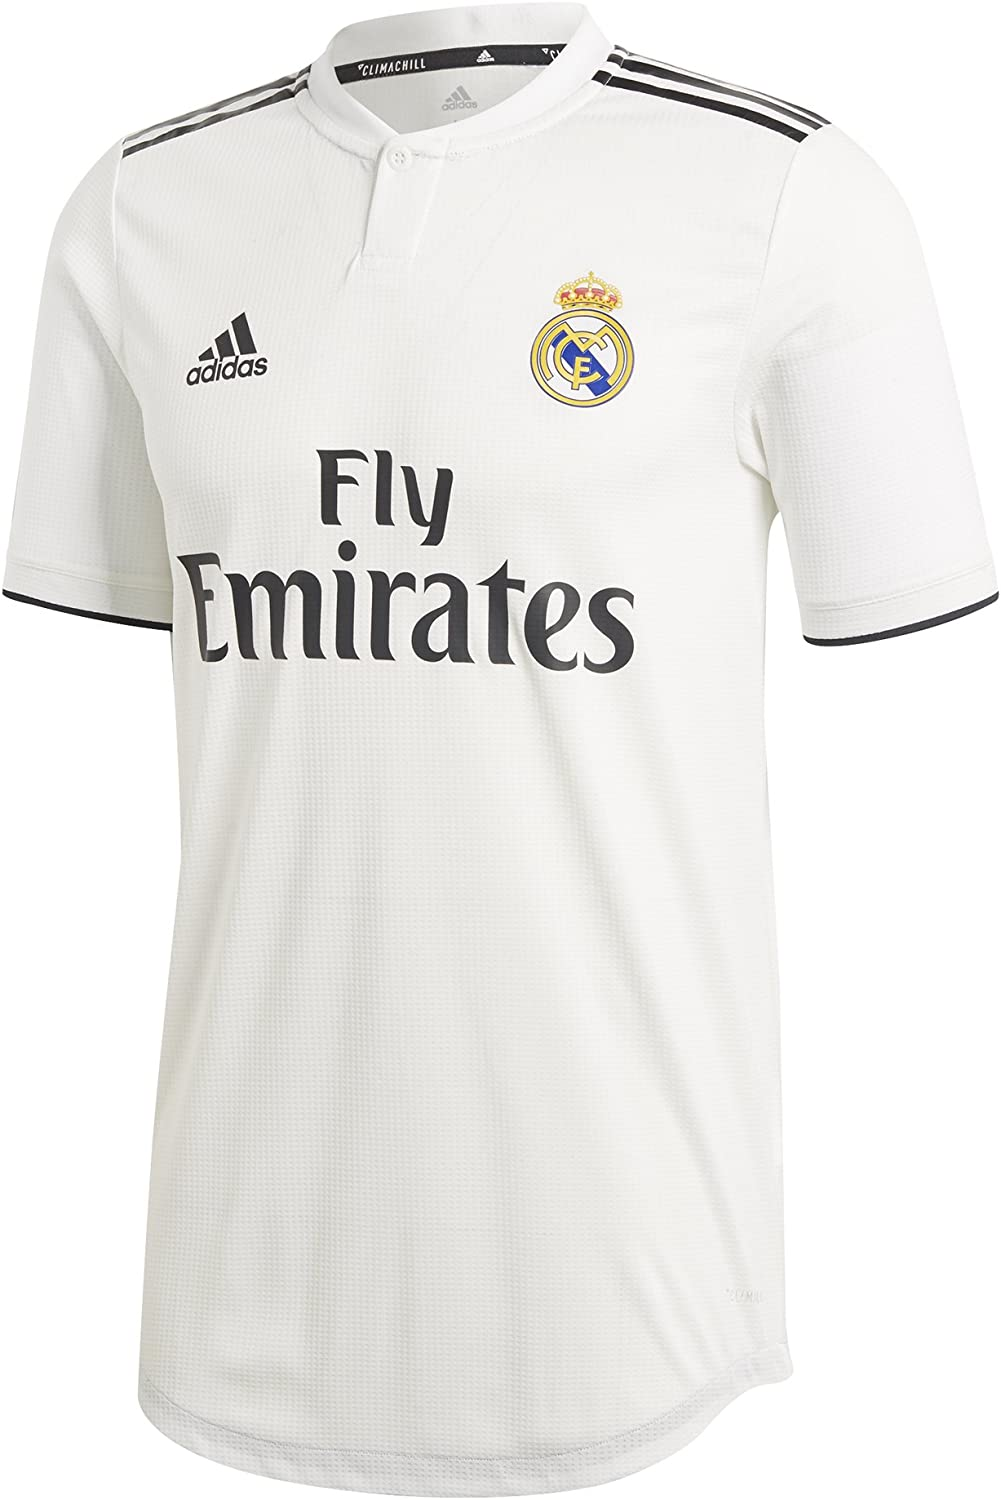 adidas 2018-2019 Real Madrid Authentic Home Football Soccer T-Shirt Jersey